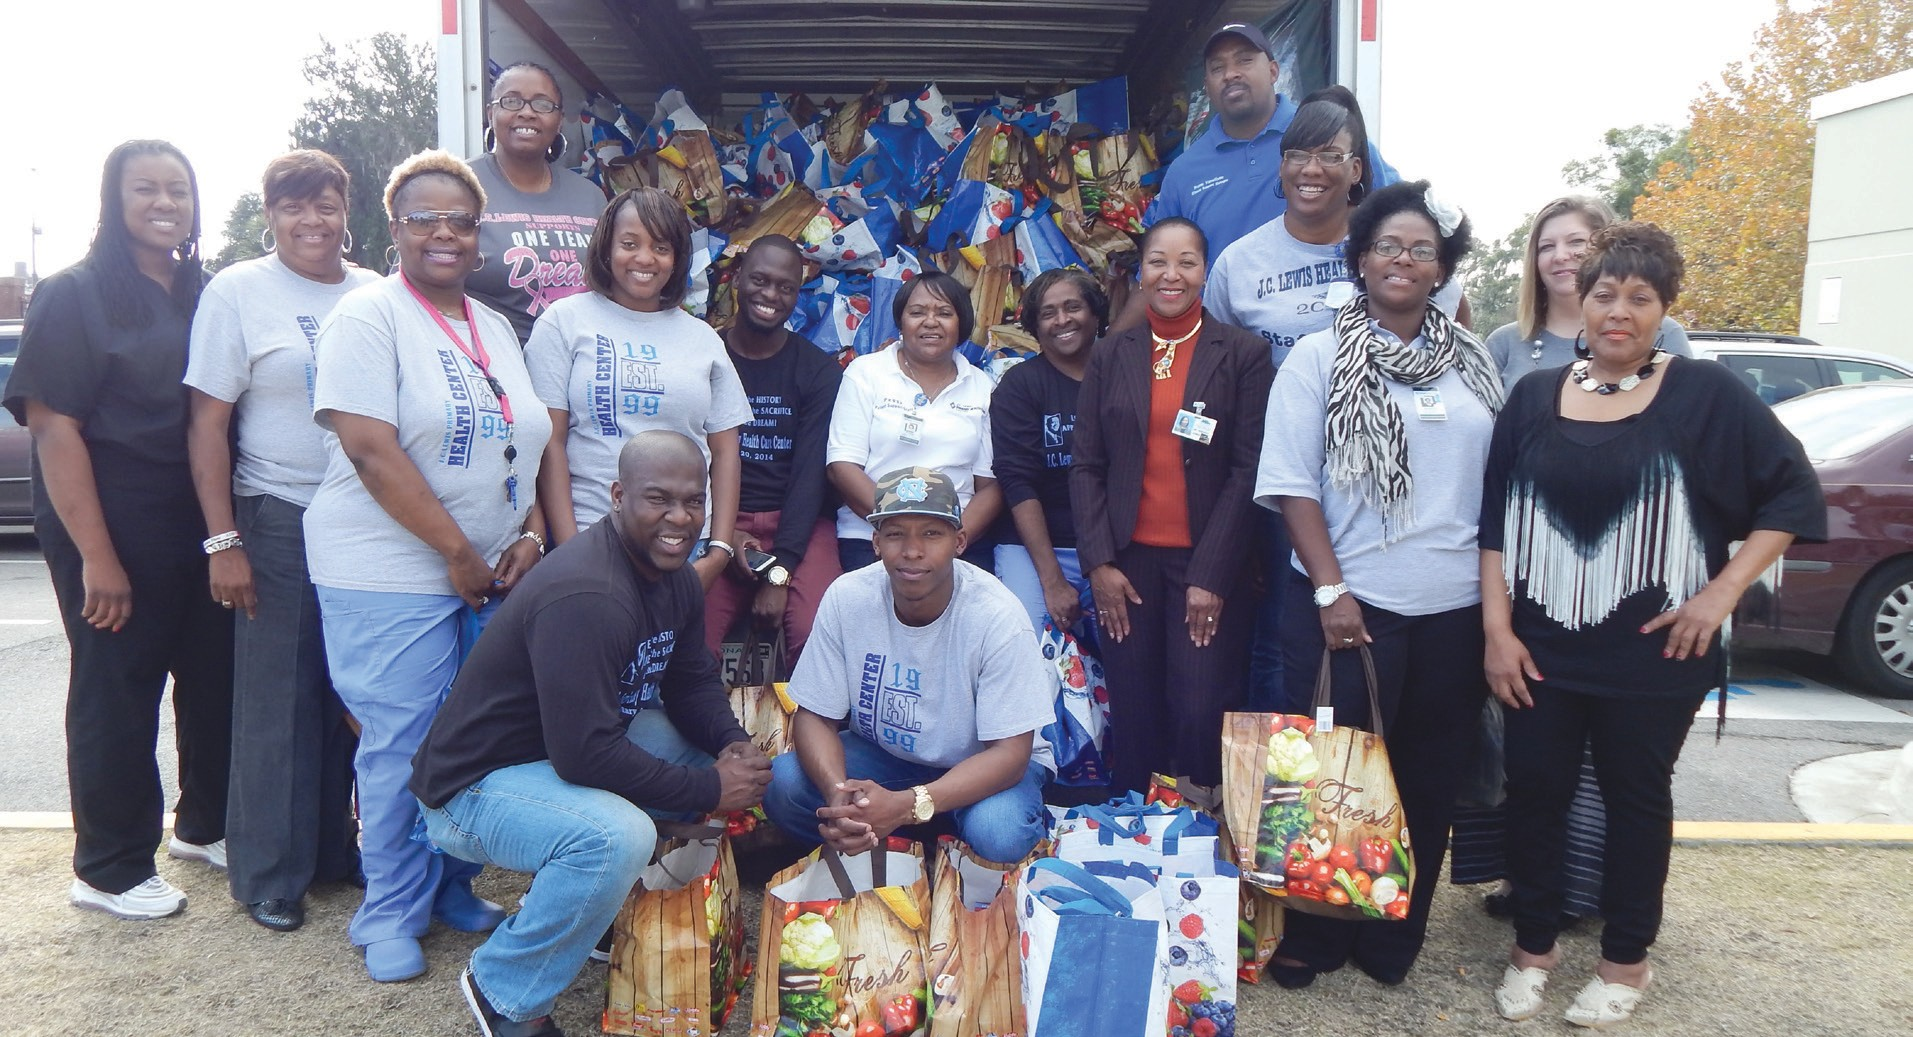 J. C. Lewis Primary Health donates Thanksgiving Bags to the 775 students at Gadsden Elementary